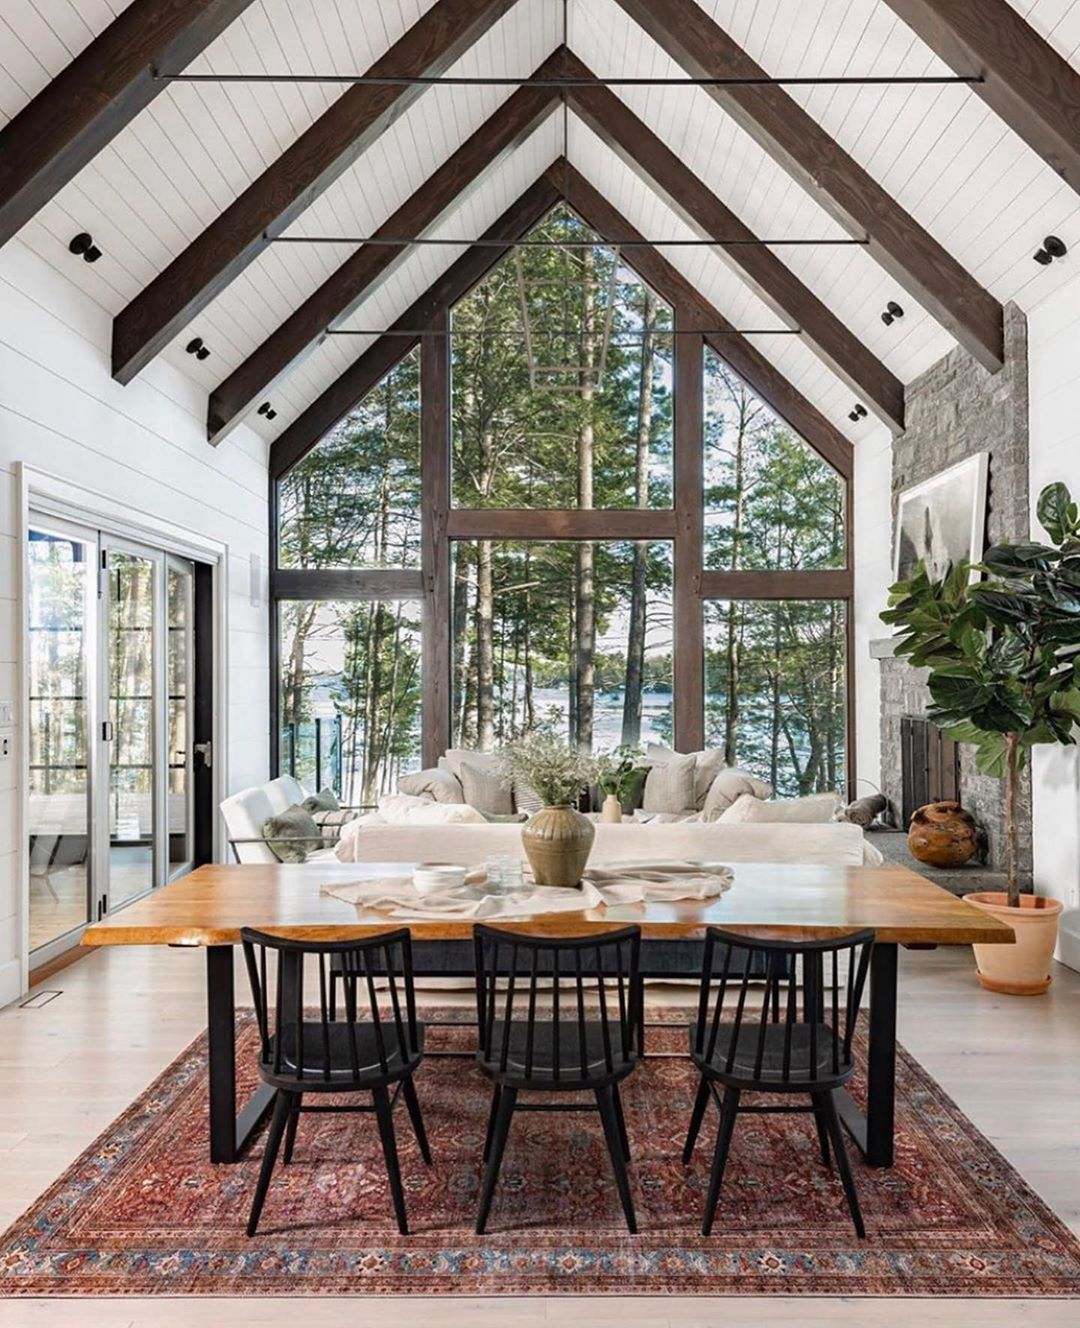 Kathy Kuo On Instagram This Open Concept Home Just Left Me Breathless I M Amazed When One Masters The Residential Design Muskoka Cottage Open Concept Home